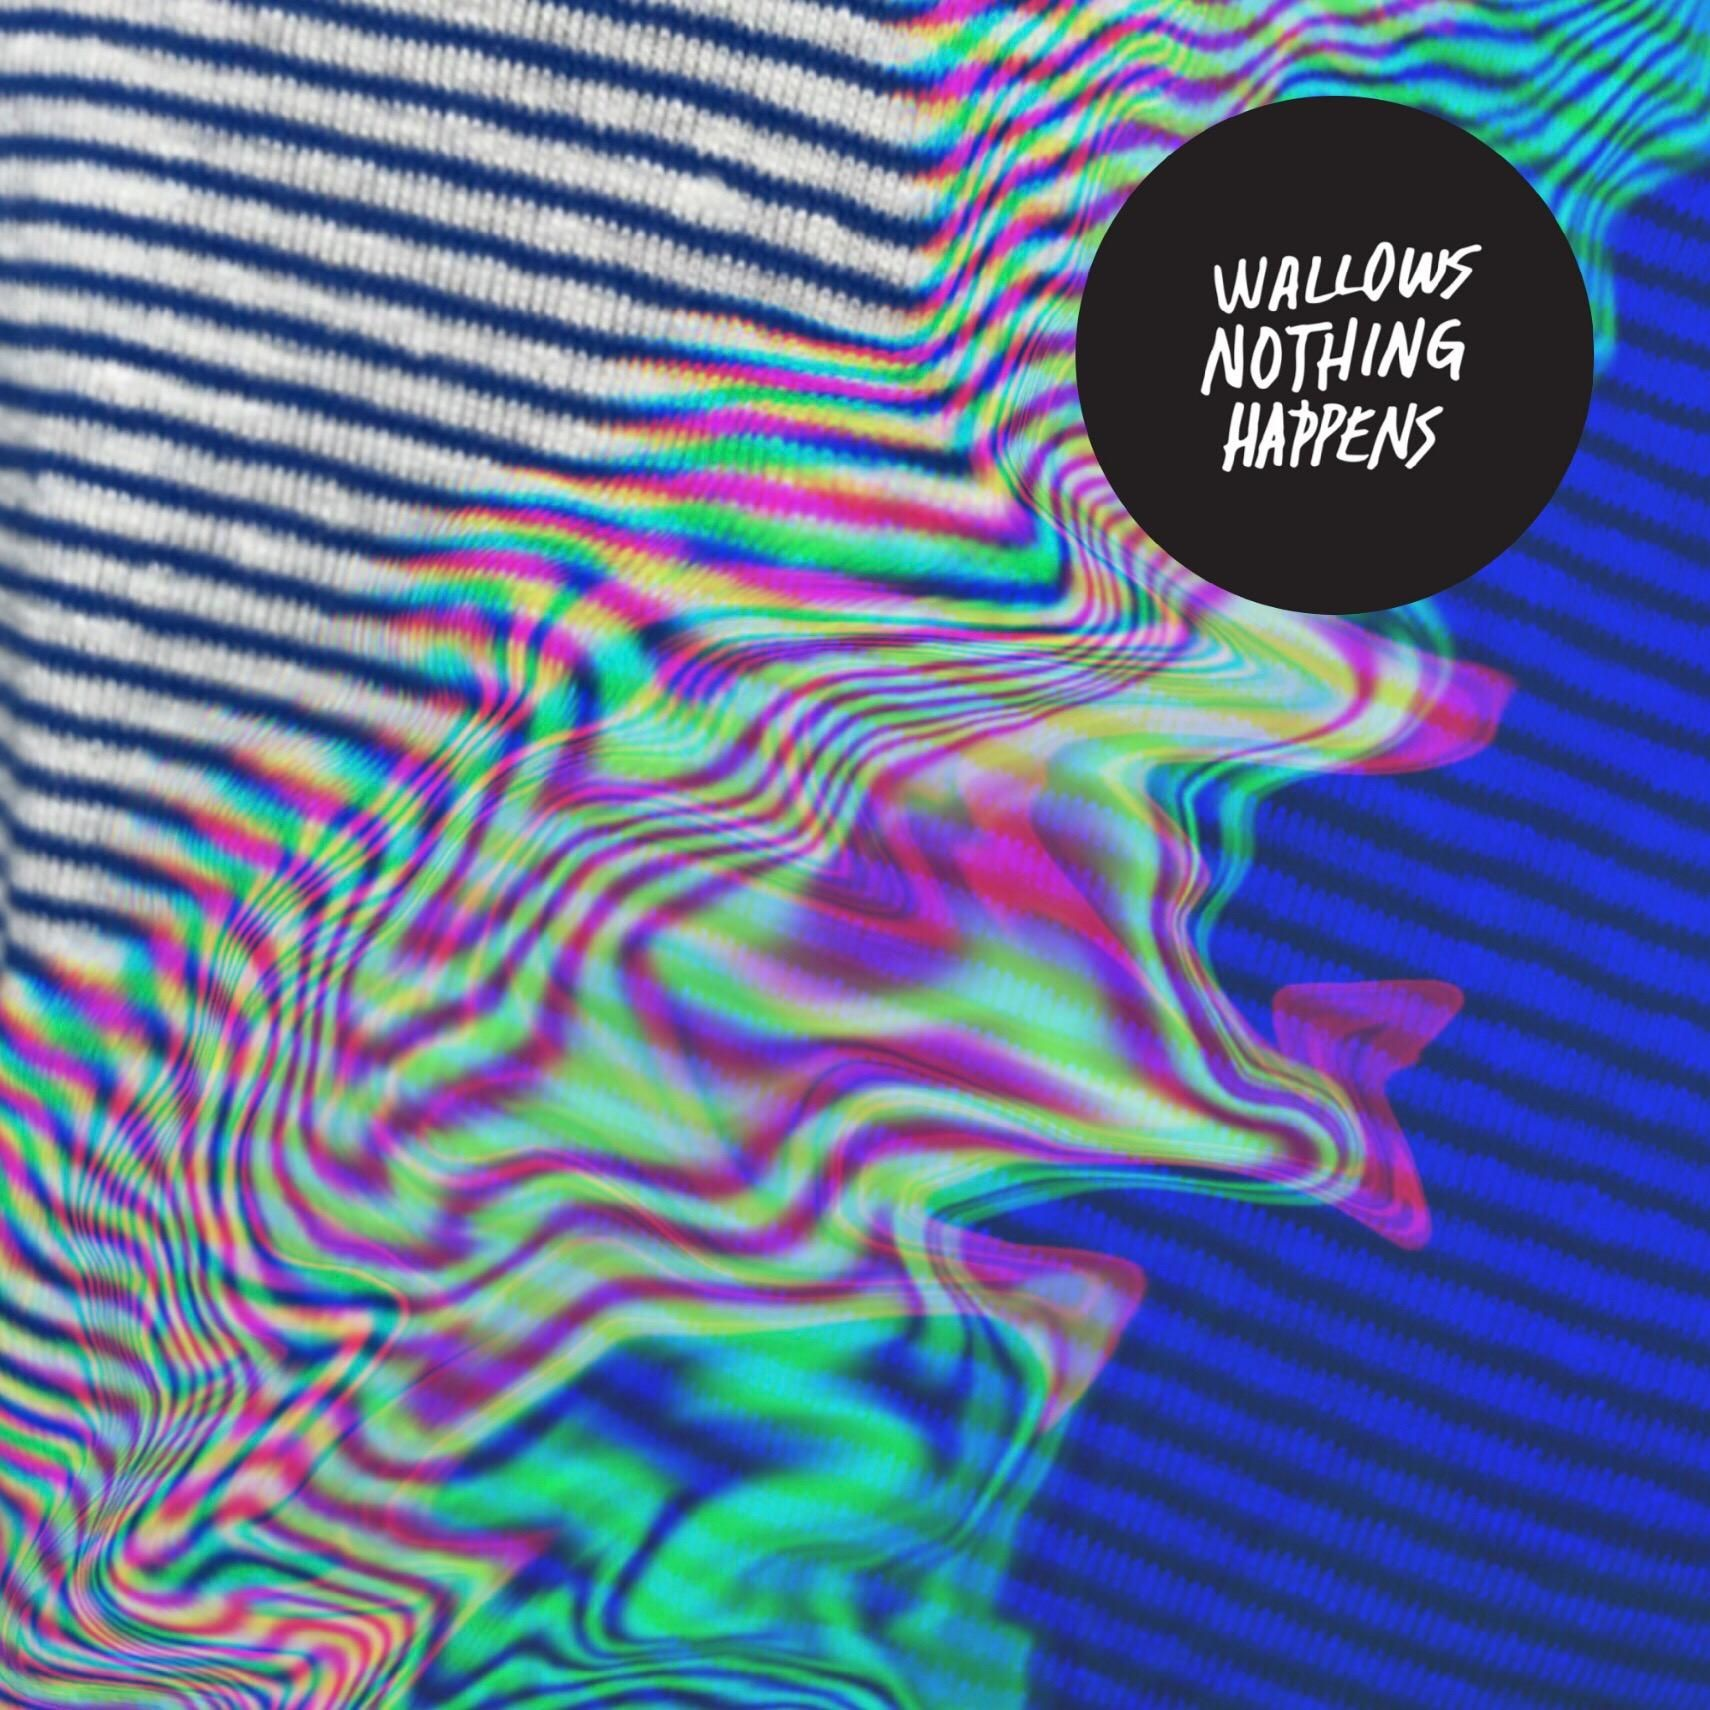 Wallows Nothing Happens Cover Wallpaper Indie Rock Fashion Band Posters